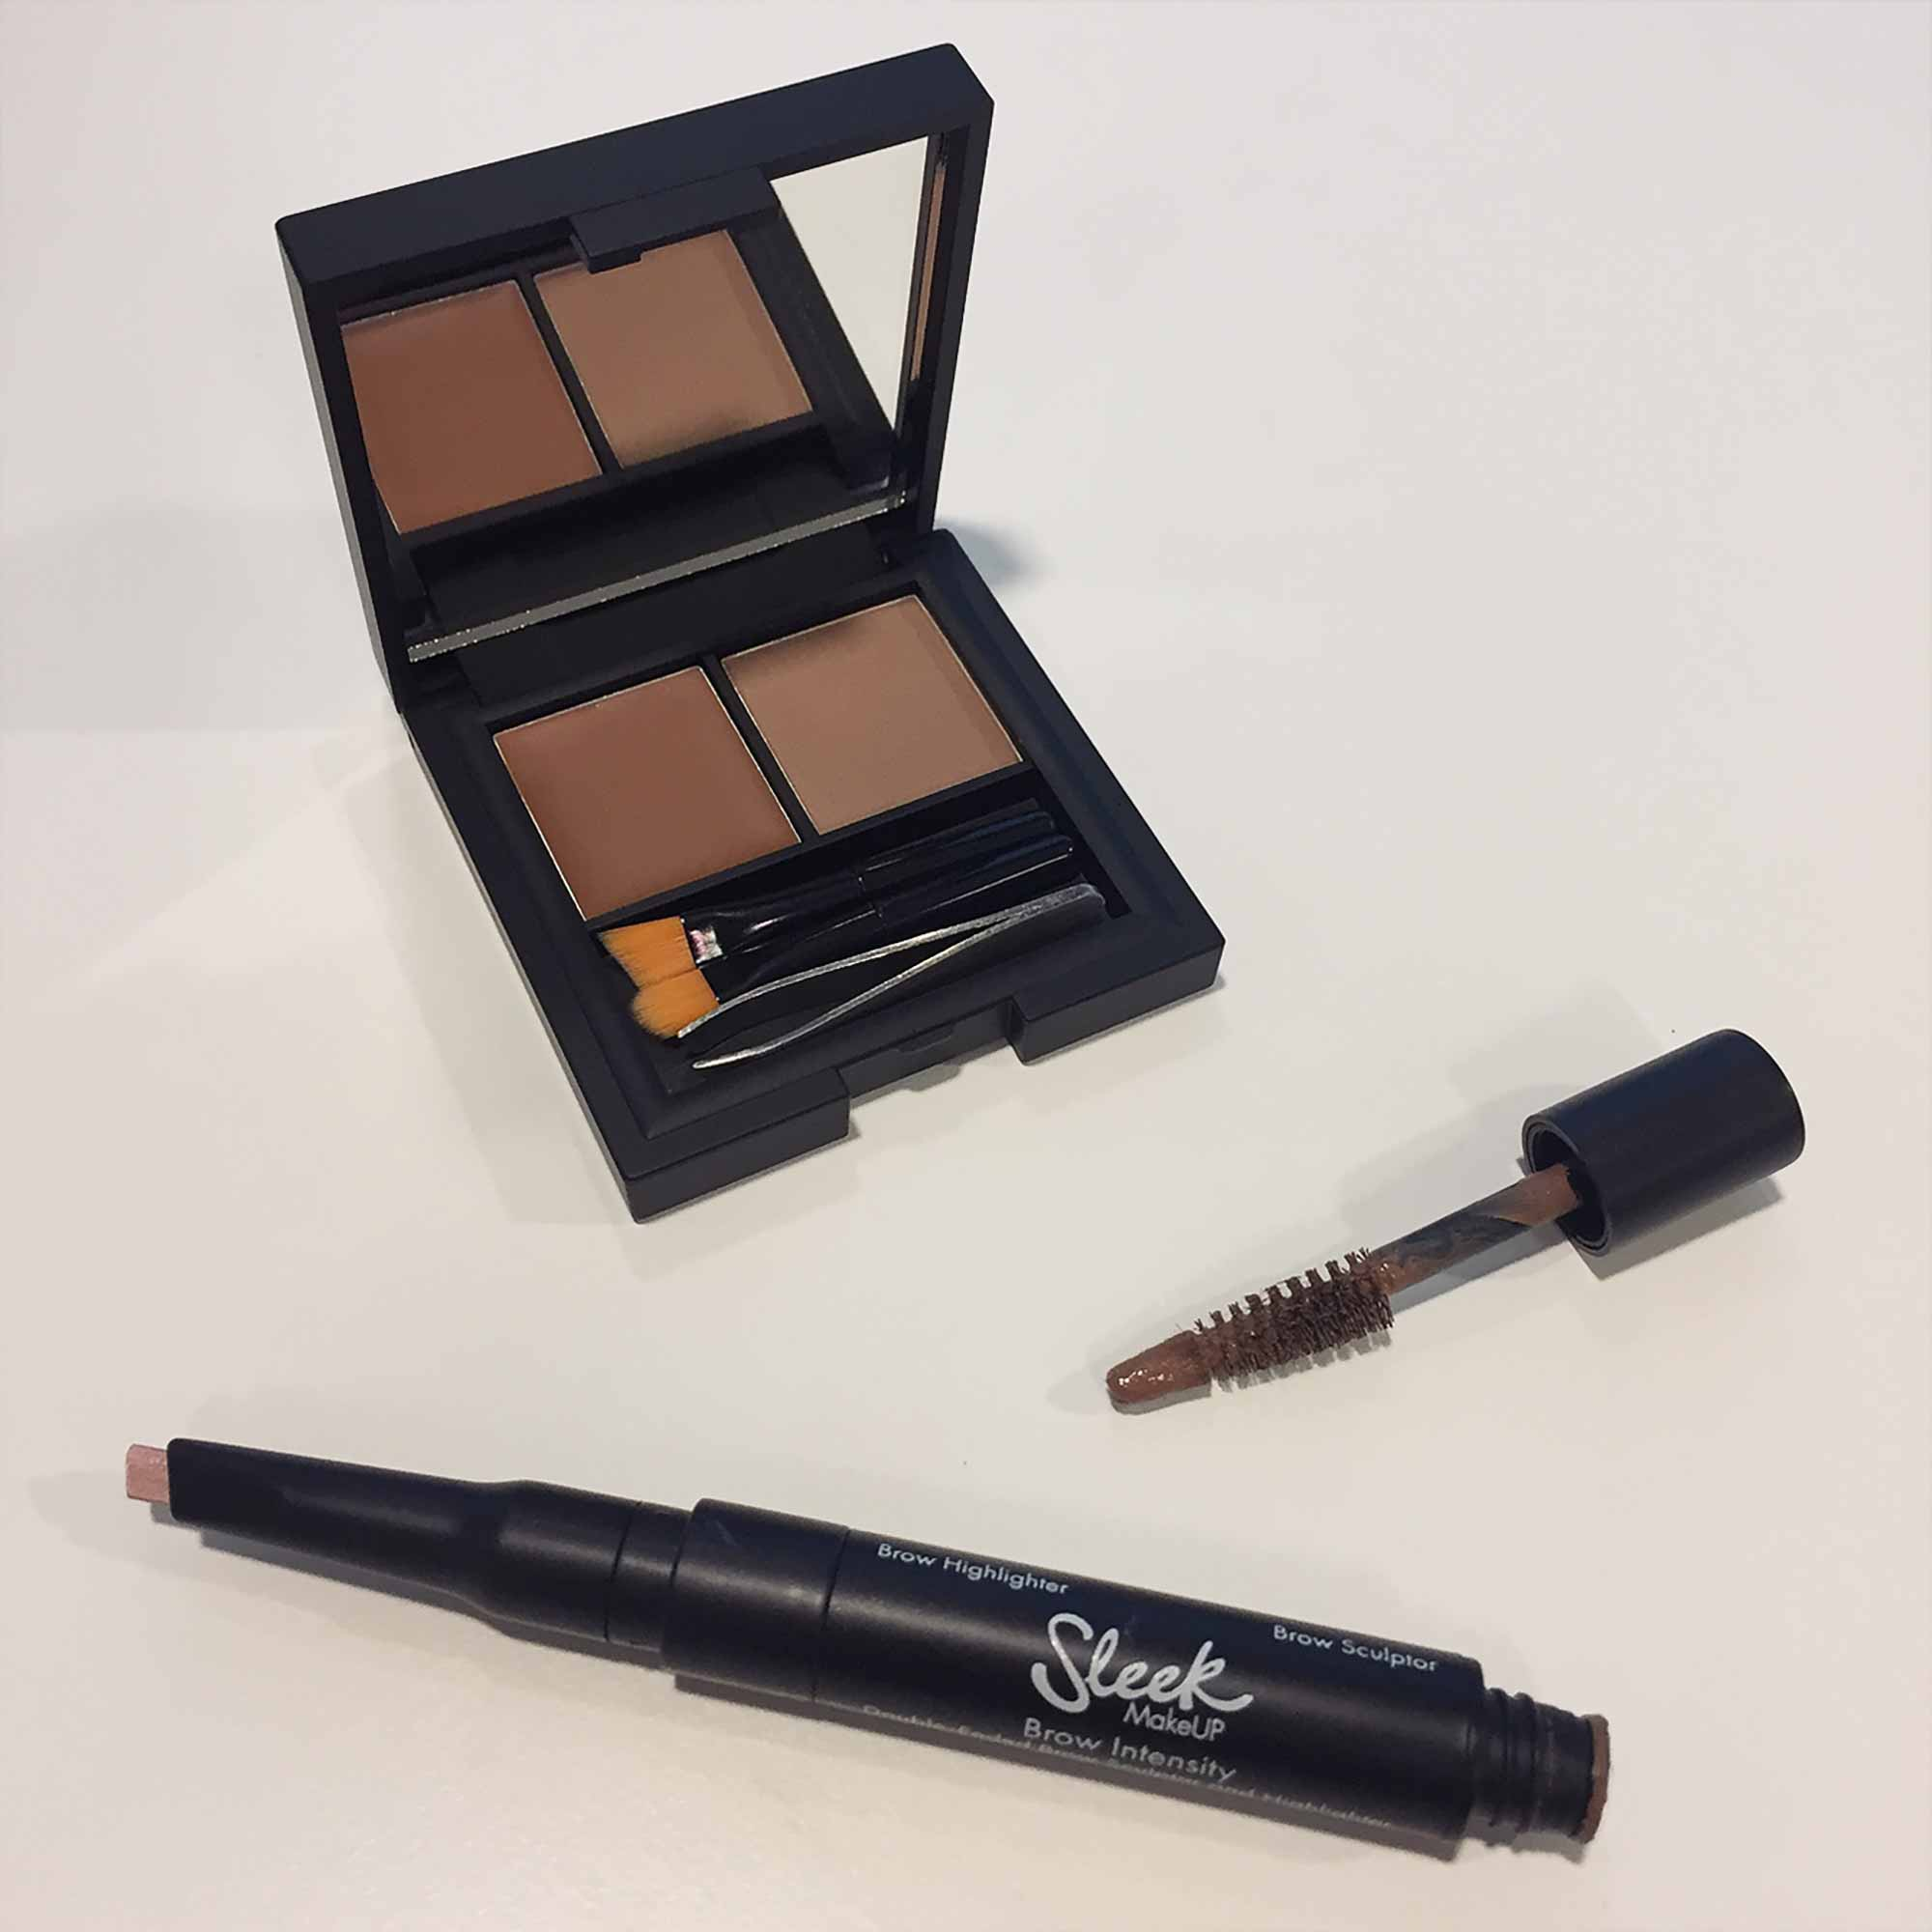 Brow Kit Brow Intensity Sleek Makeup